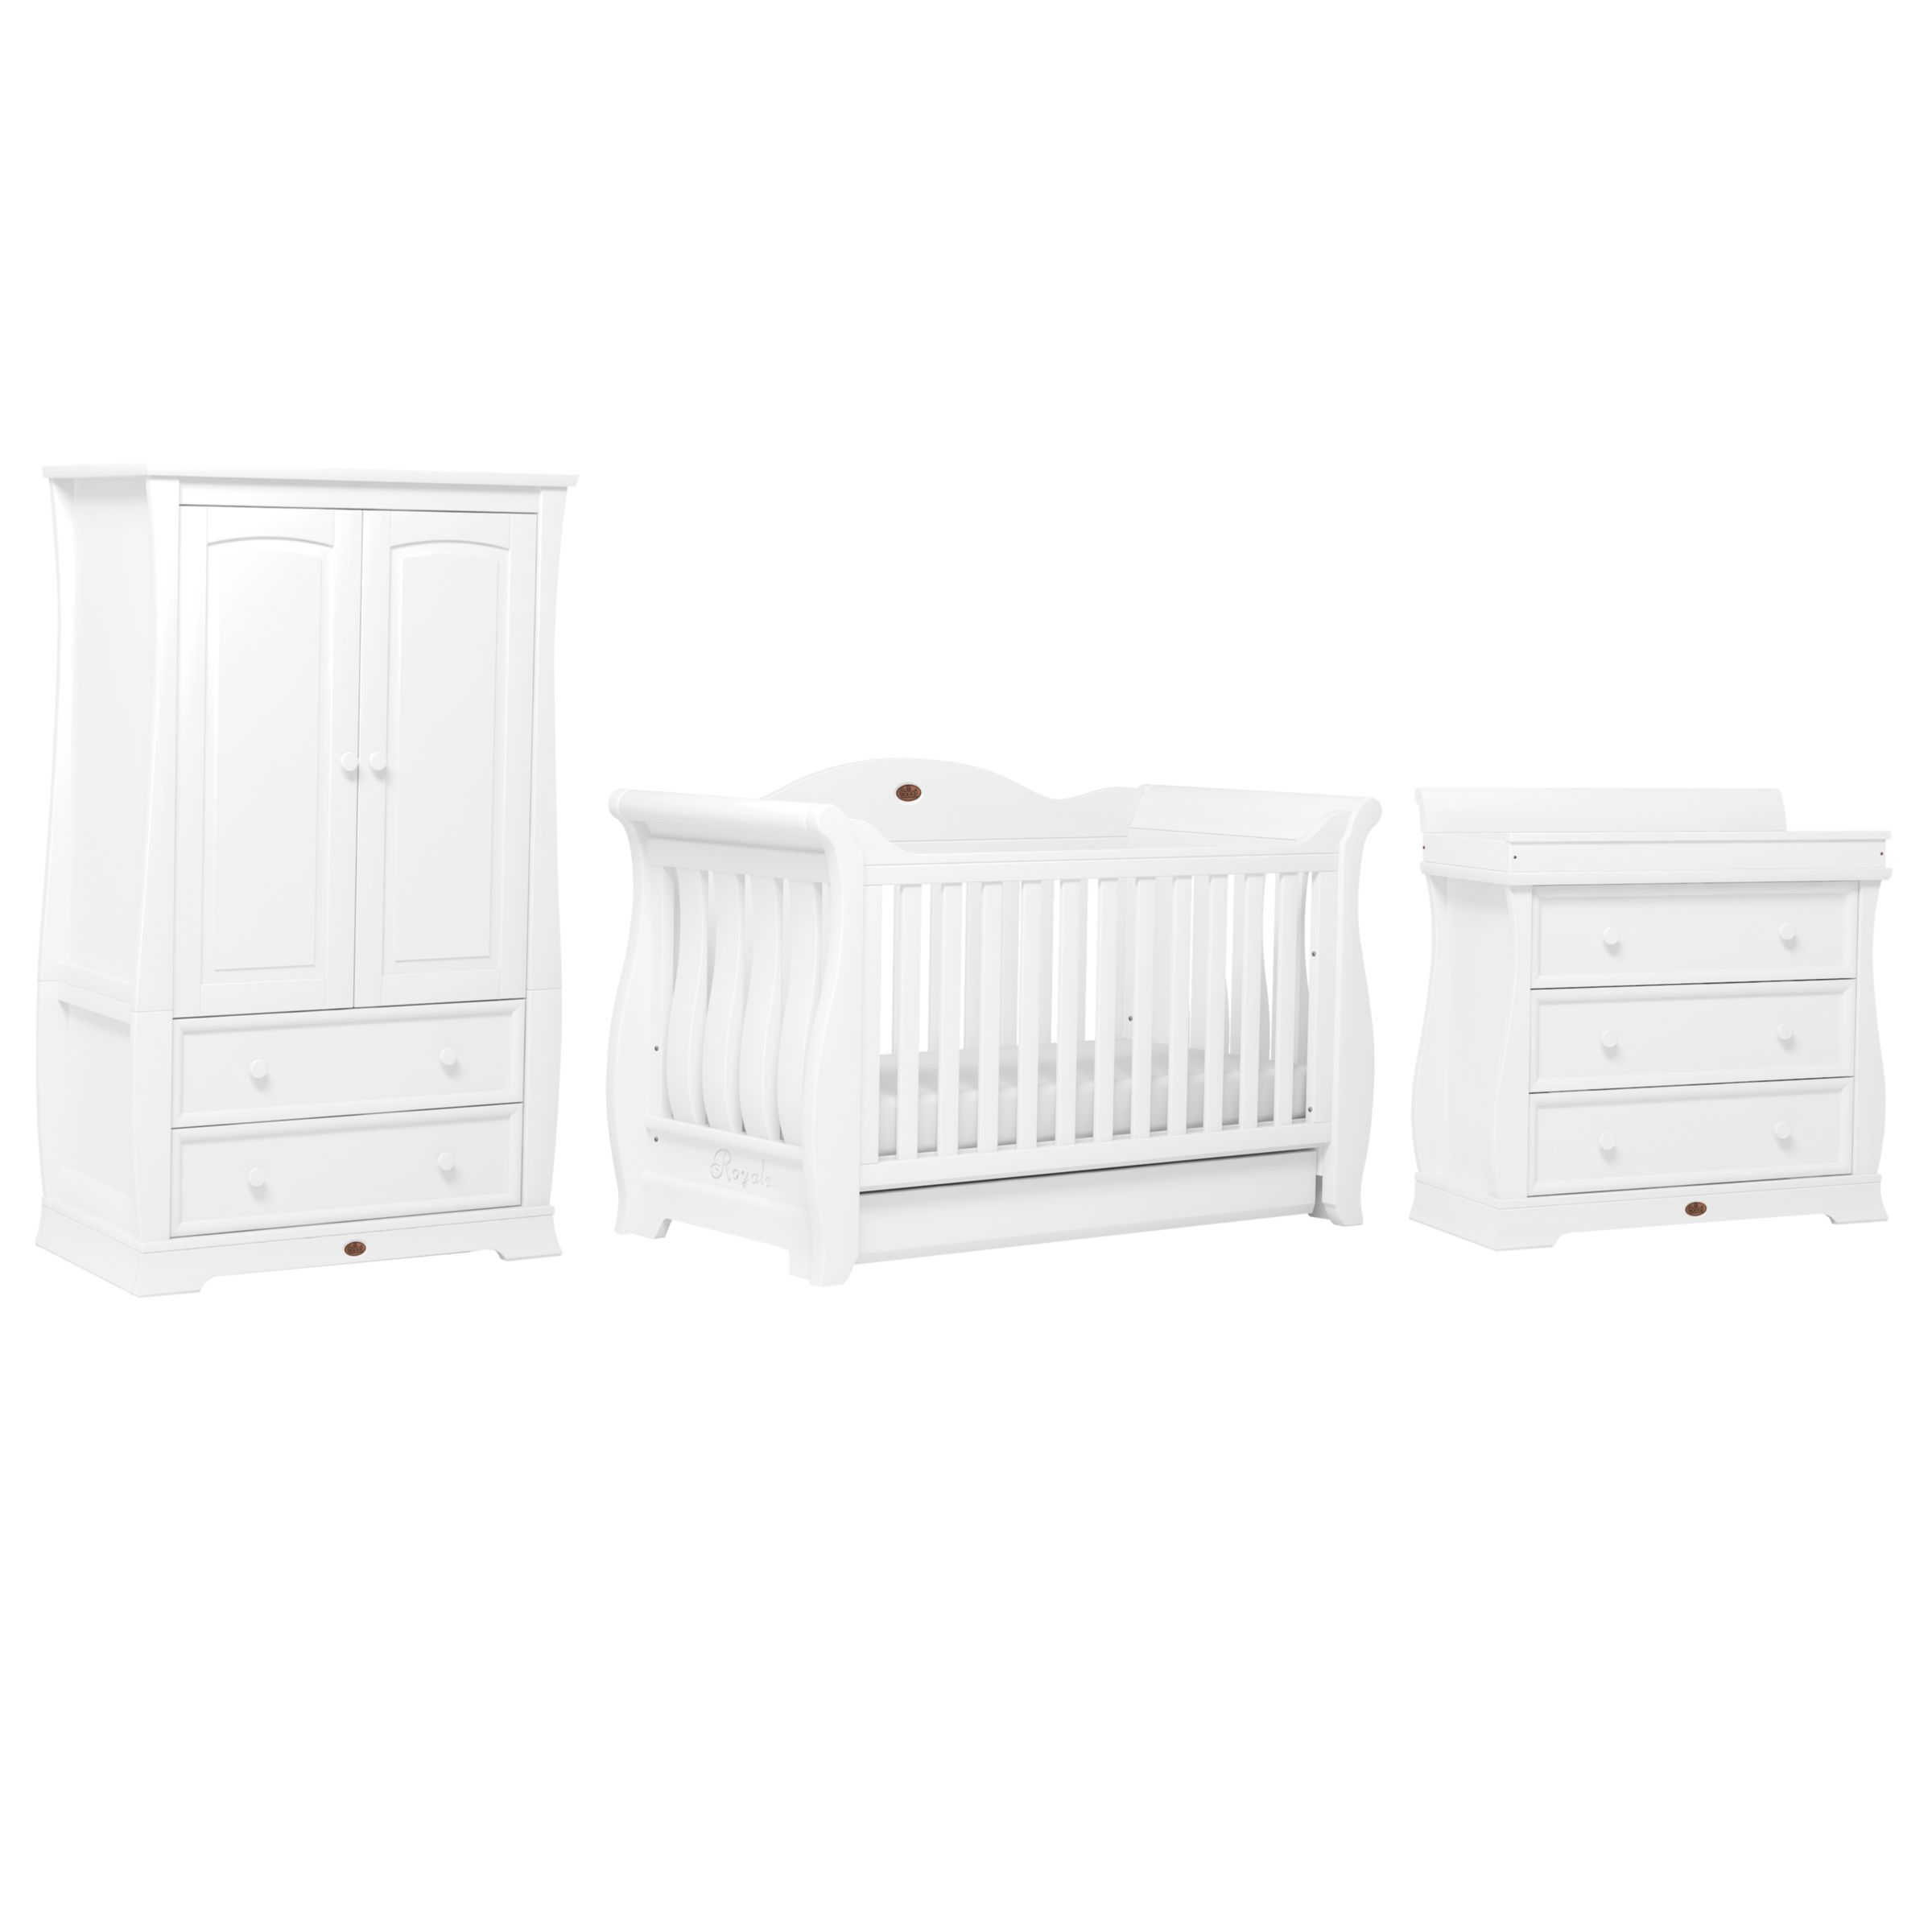 Boori Boori Sleigh Three Drawer Dresser, White